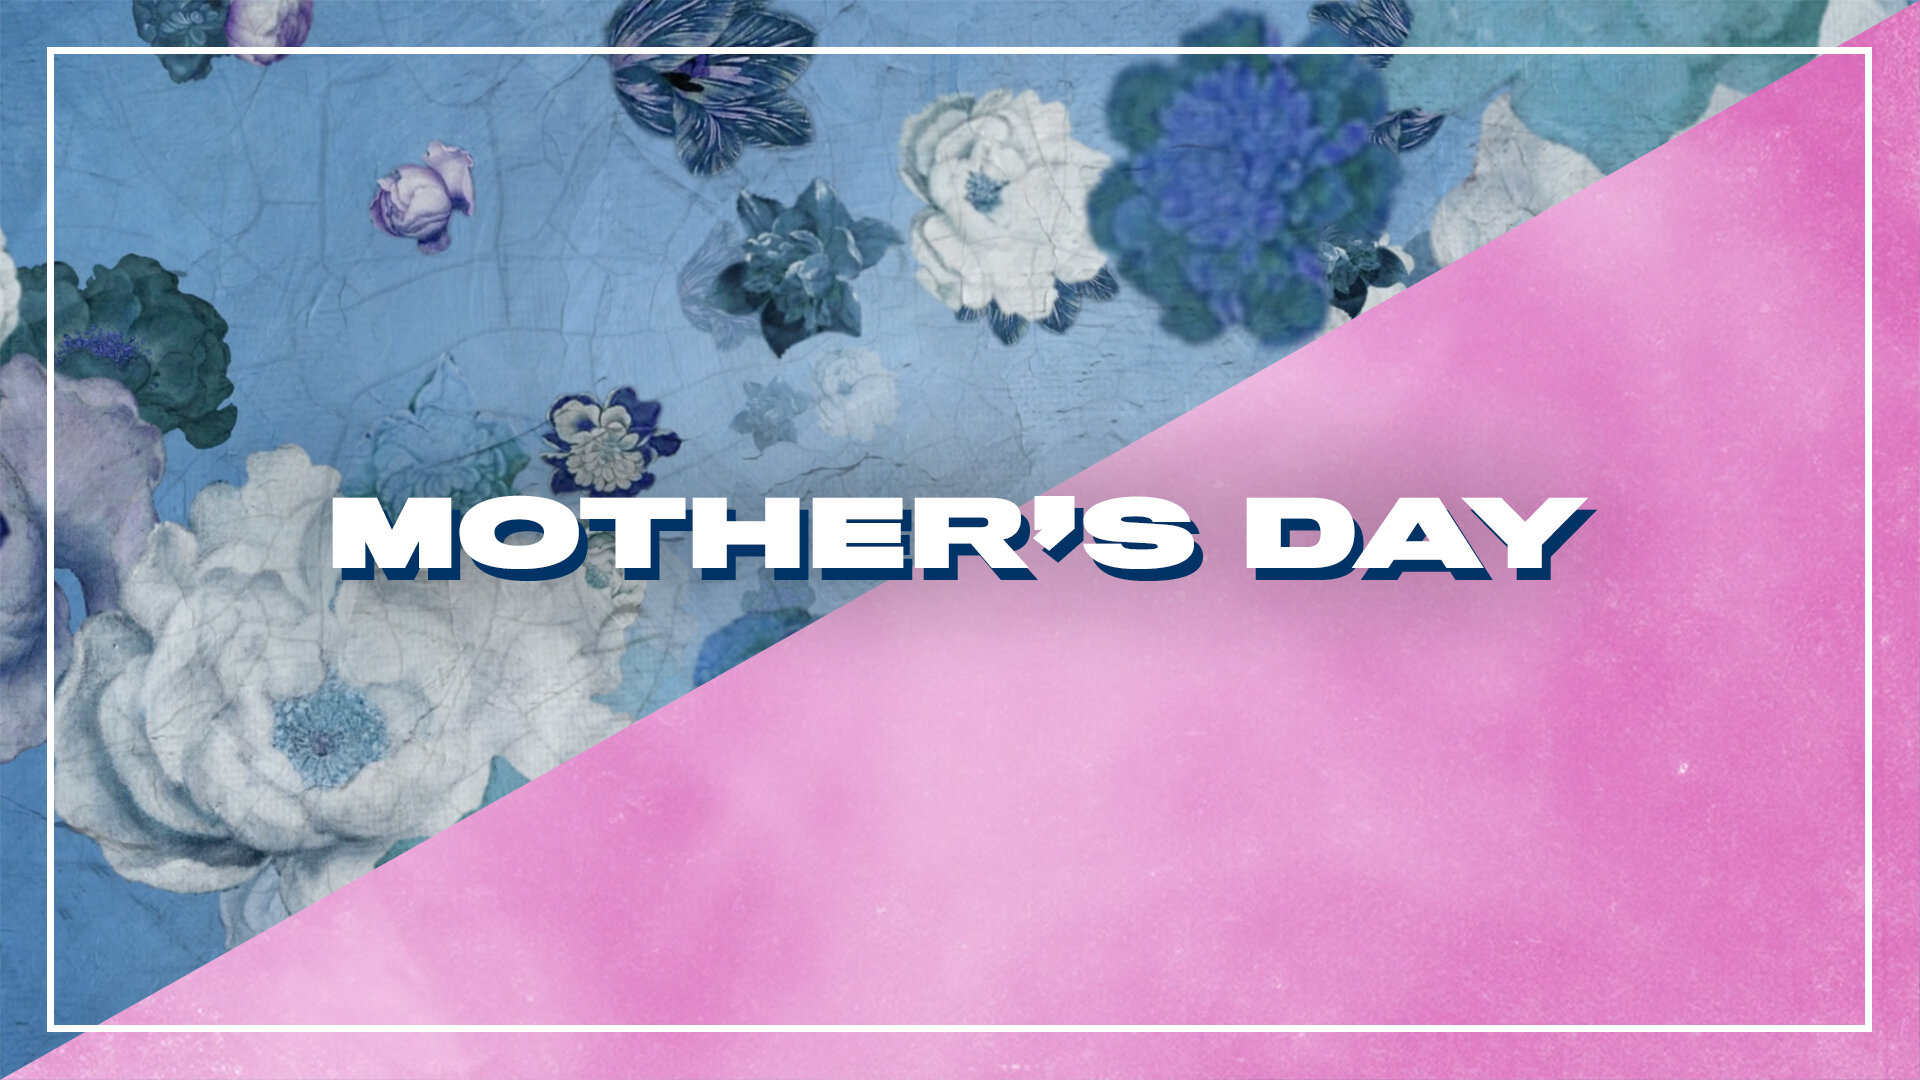 SeeingSounds_Mother'sDay_Poster.jpg